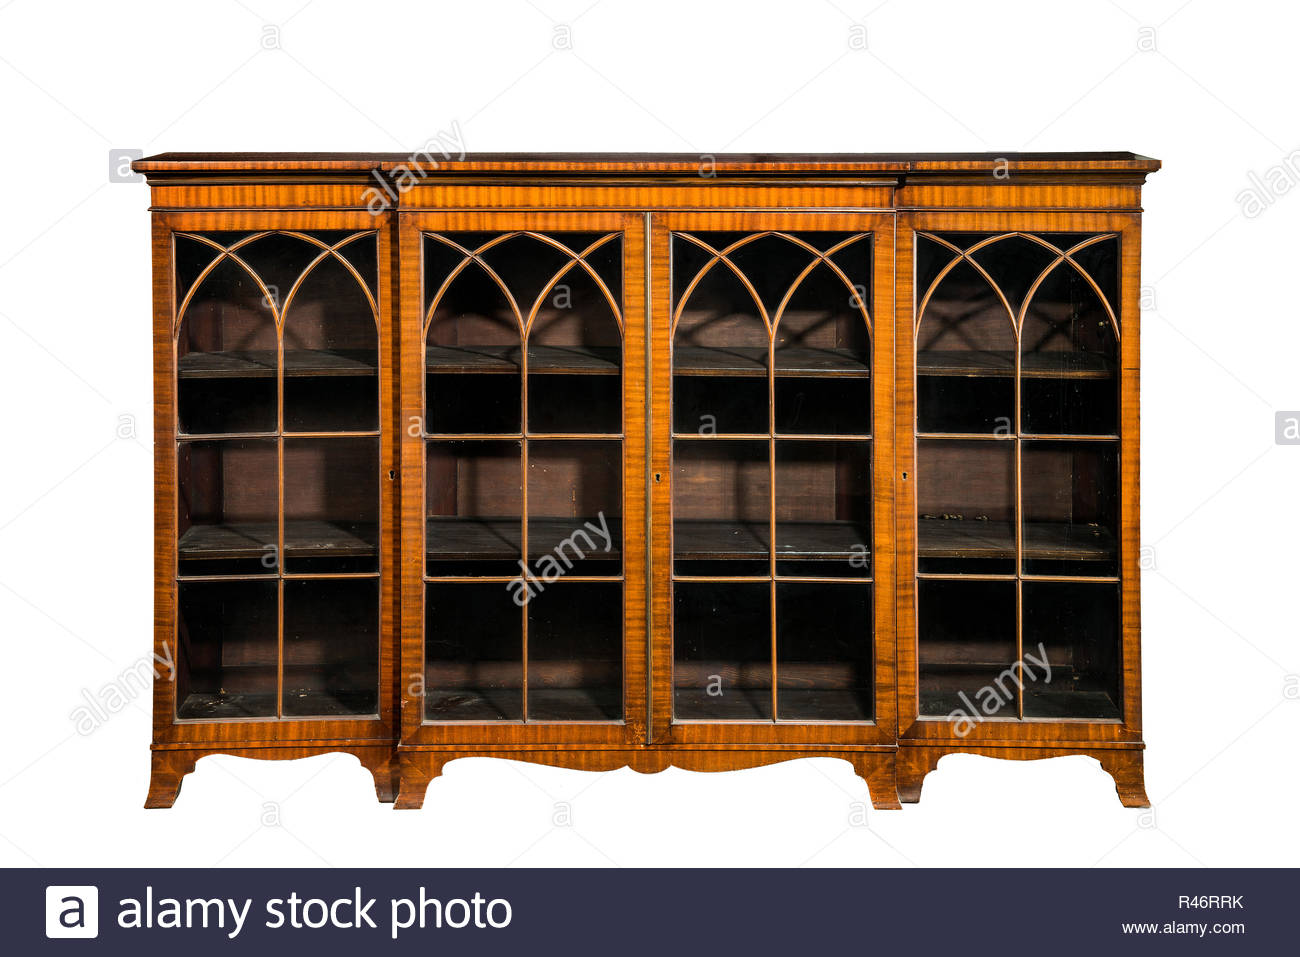 bookcase cabinet antique vintage with glass doors isolated - Stock Image - Cabinet Bookcase Stock Photos & Cabinet Bookcase Stock Images - Alamy